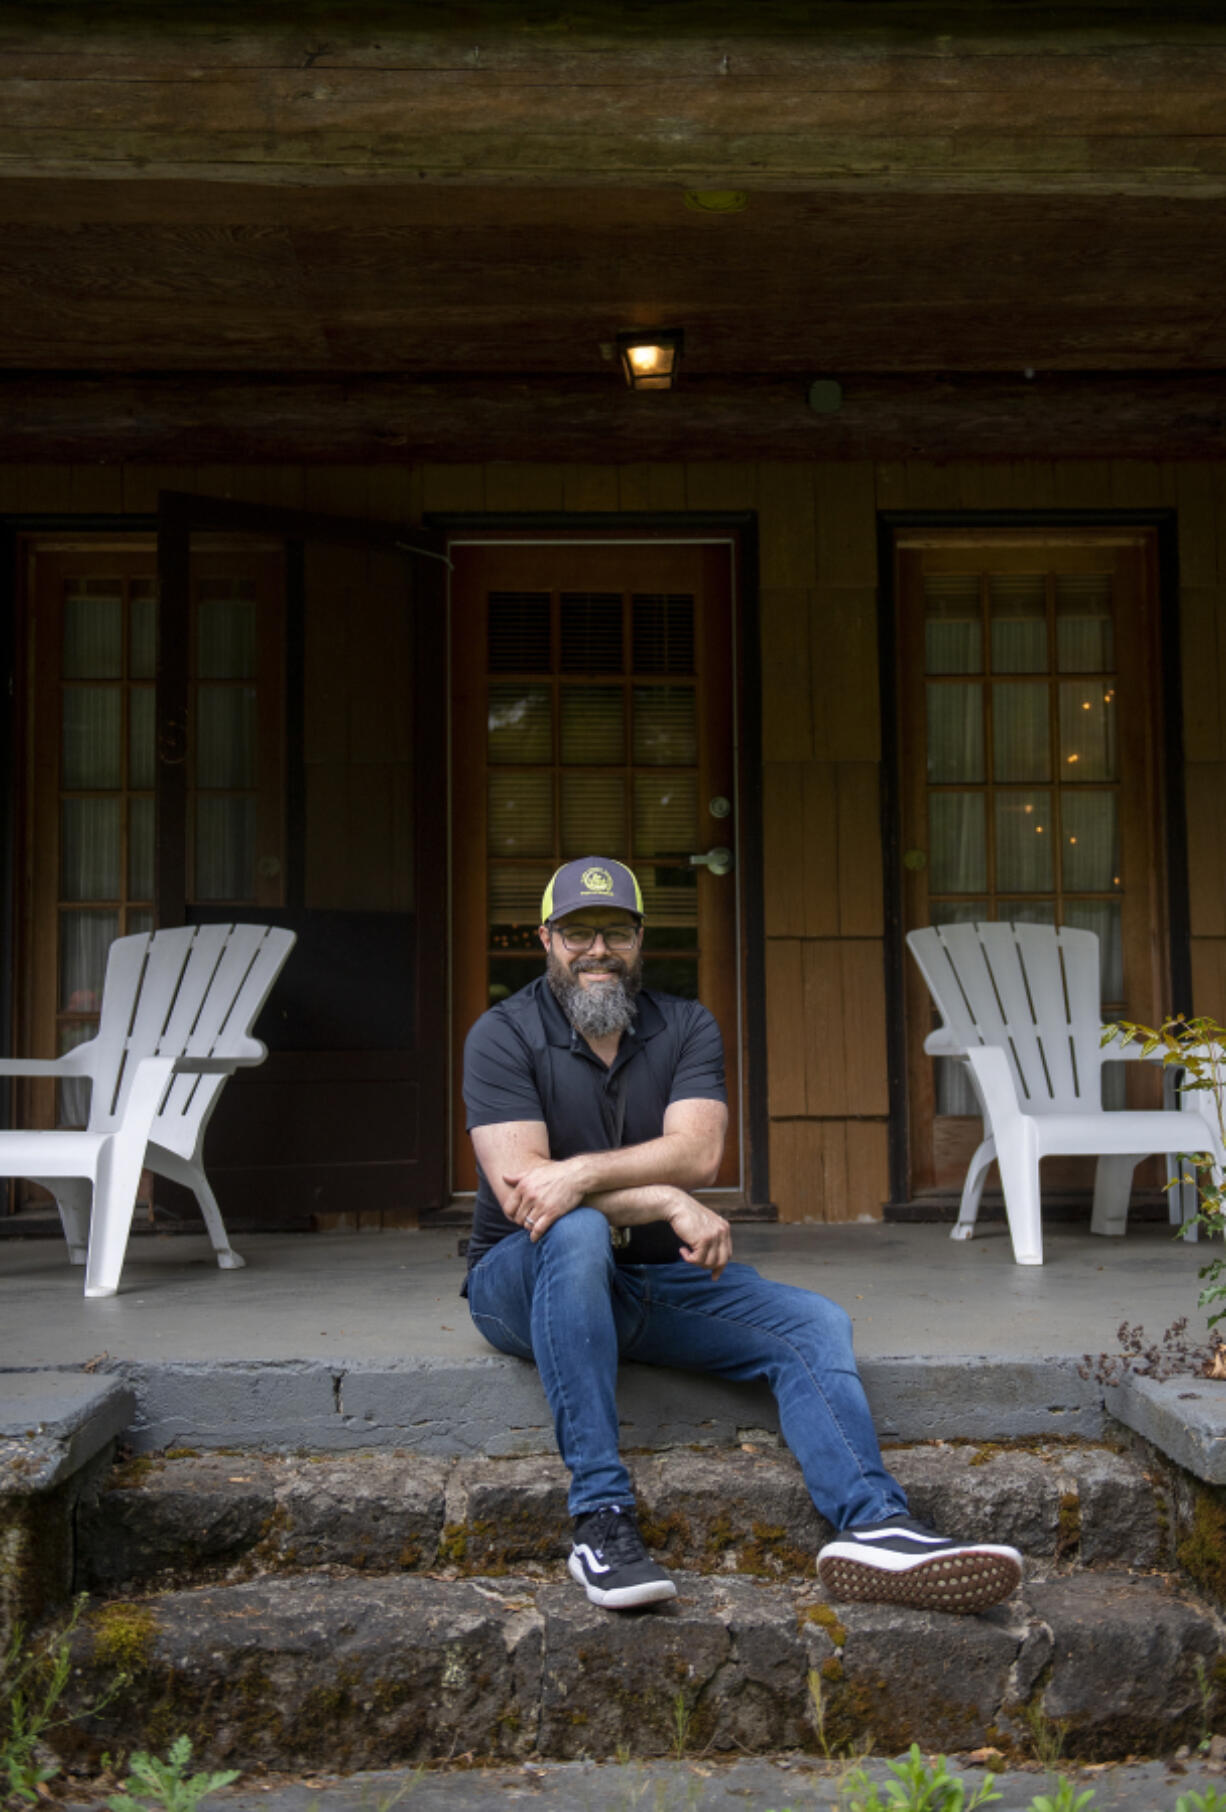 Jason Clonts, 45, grew up in Spokane, he said. After hopping around the United States in various jobs, he wanted to come back to the Pacific Northwest.